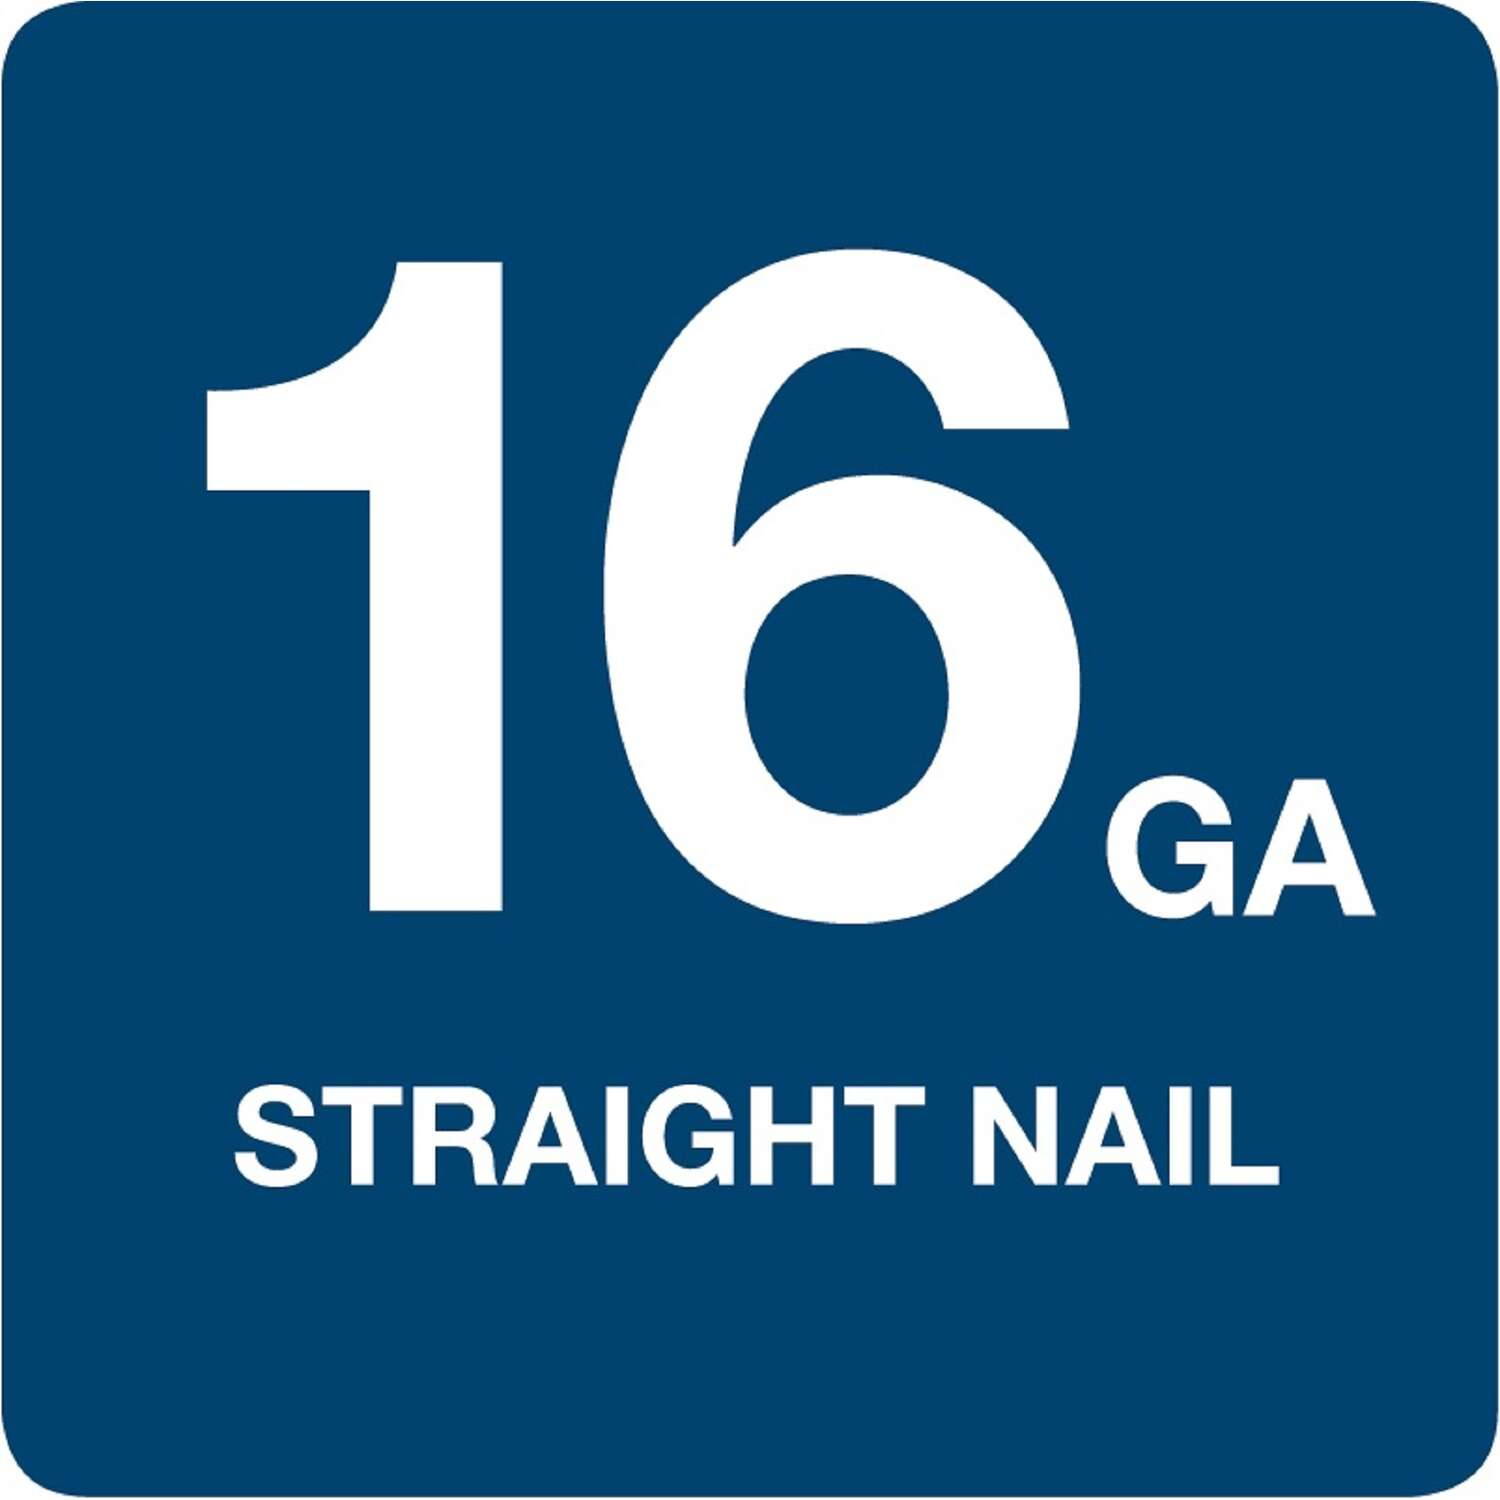 Grip-Rite  16 Ga. Smooth Shank  Straight Strip  Finish Nails  2 in. L x 0.06 in. Dia. 1000 count